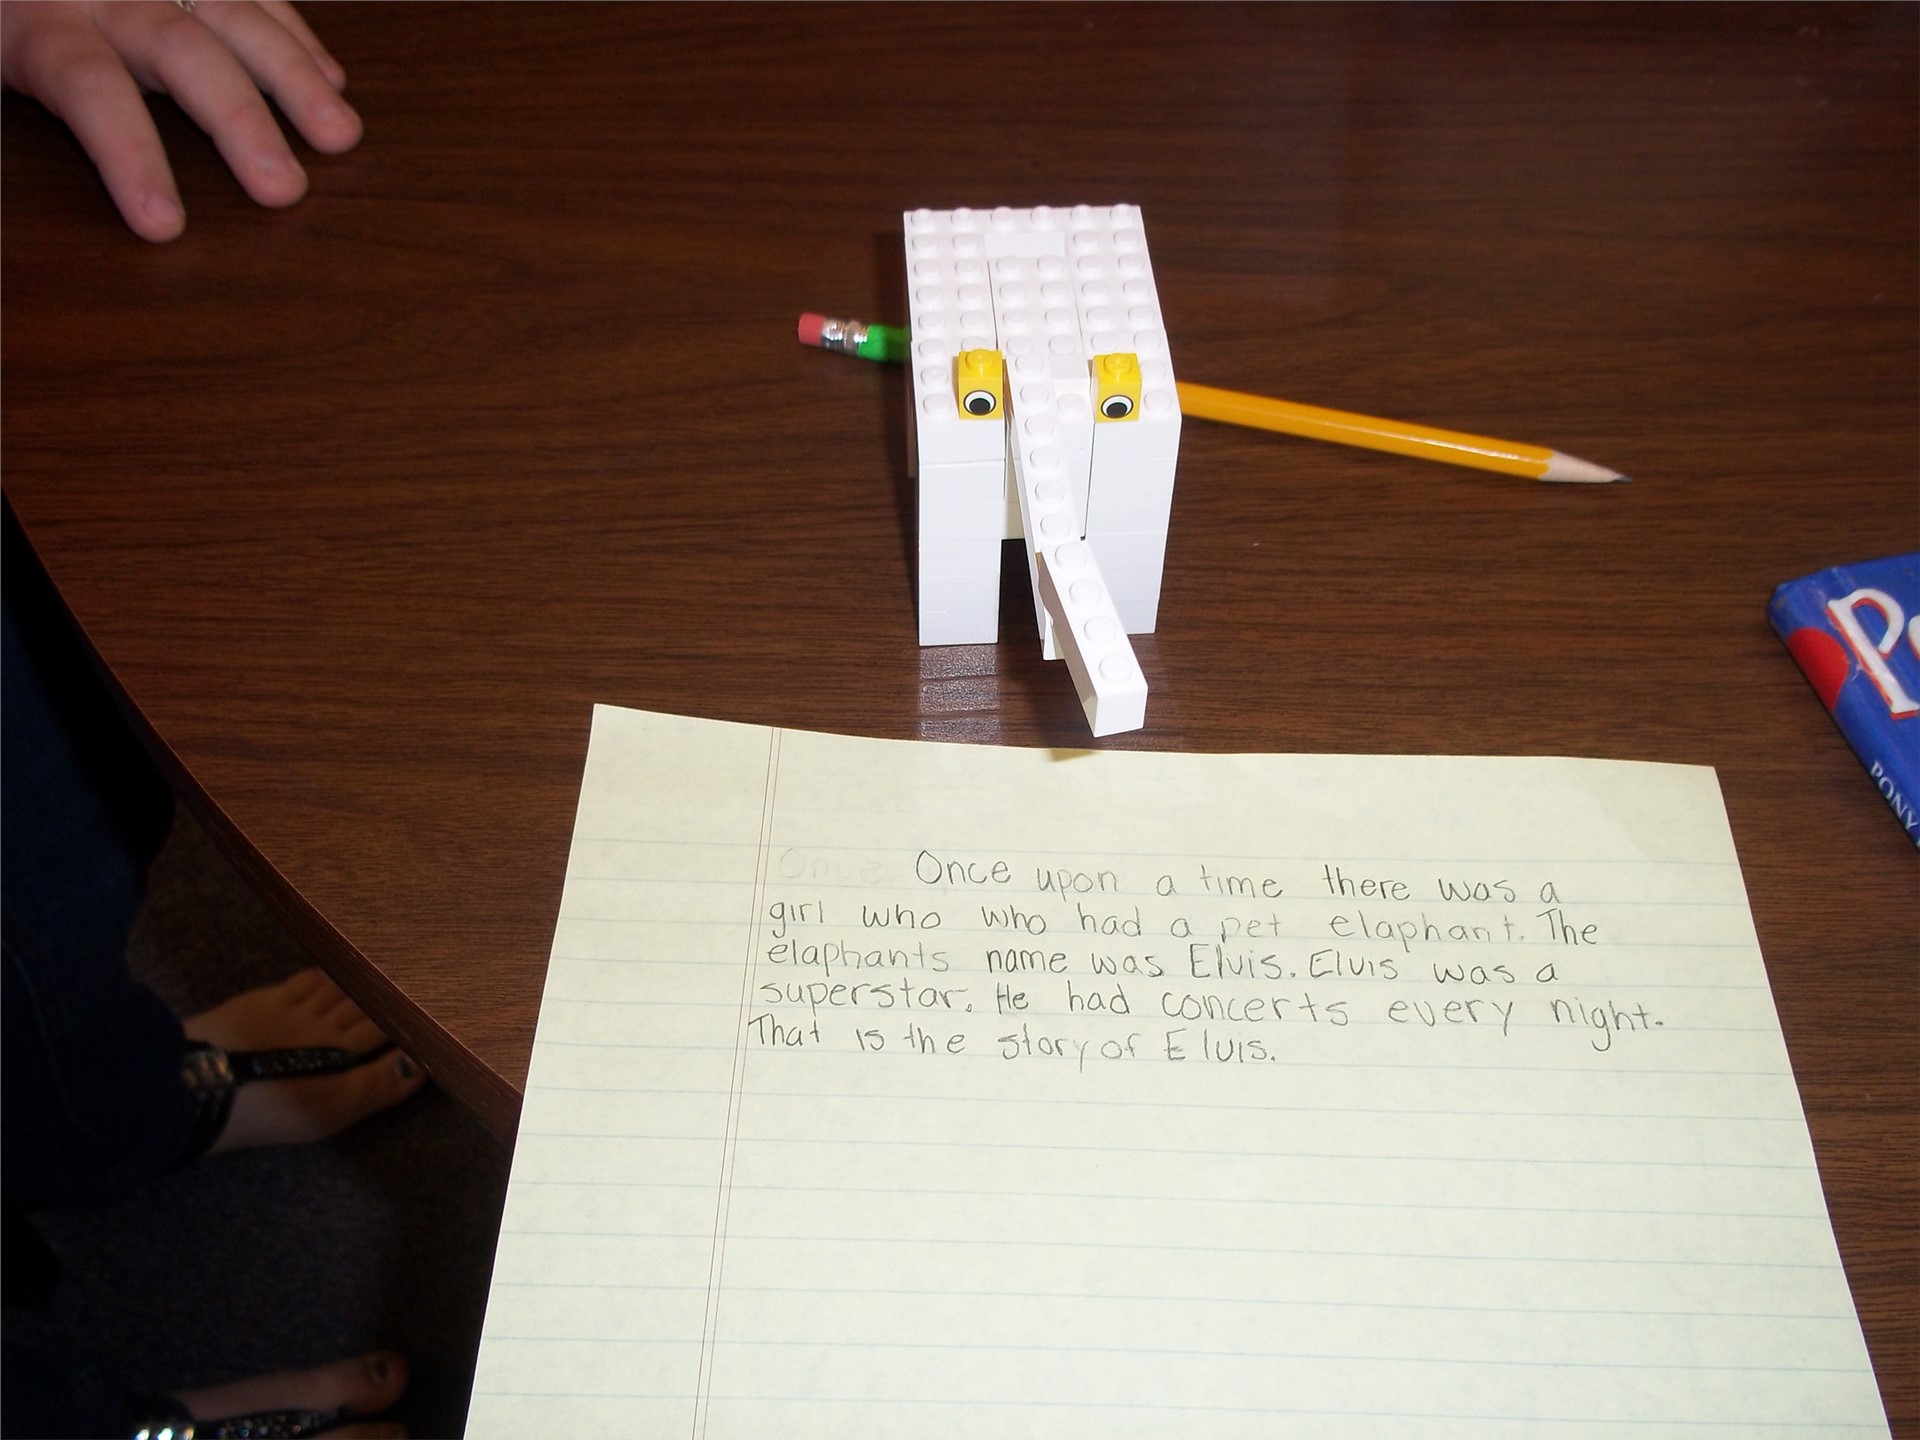 Student's story with lego pictorial.